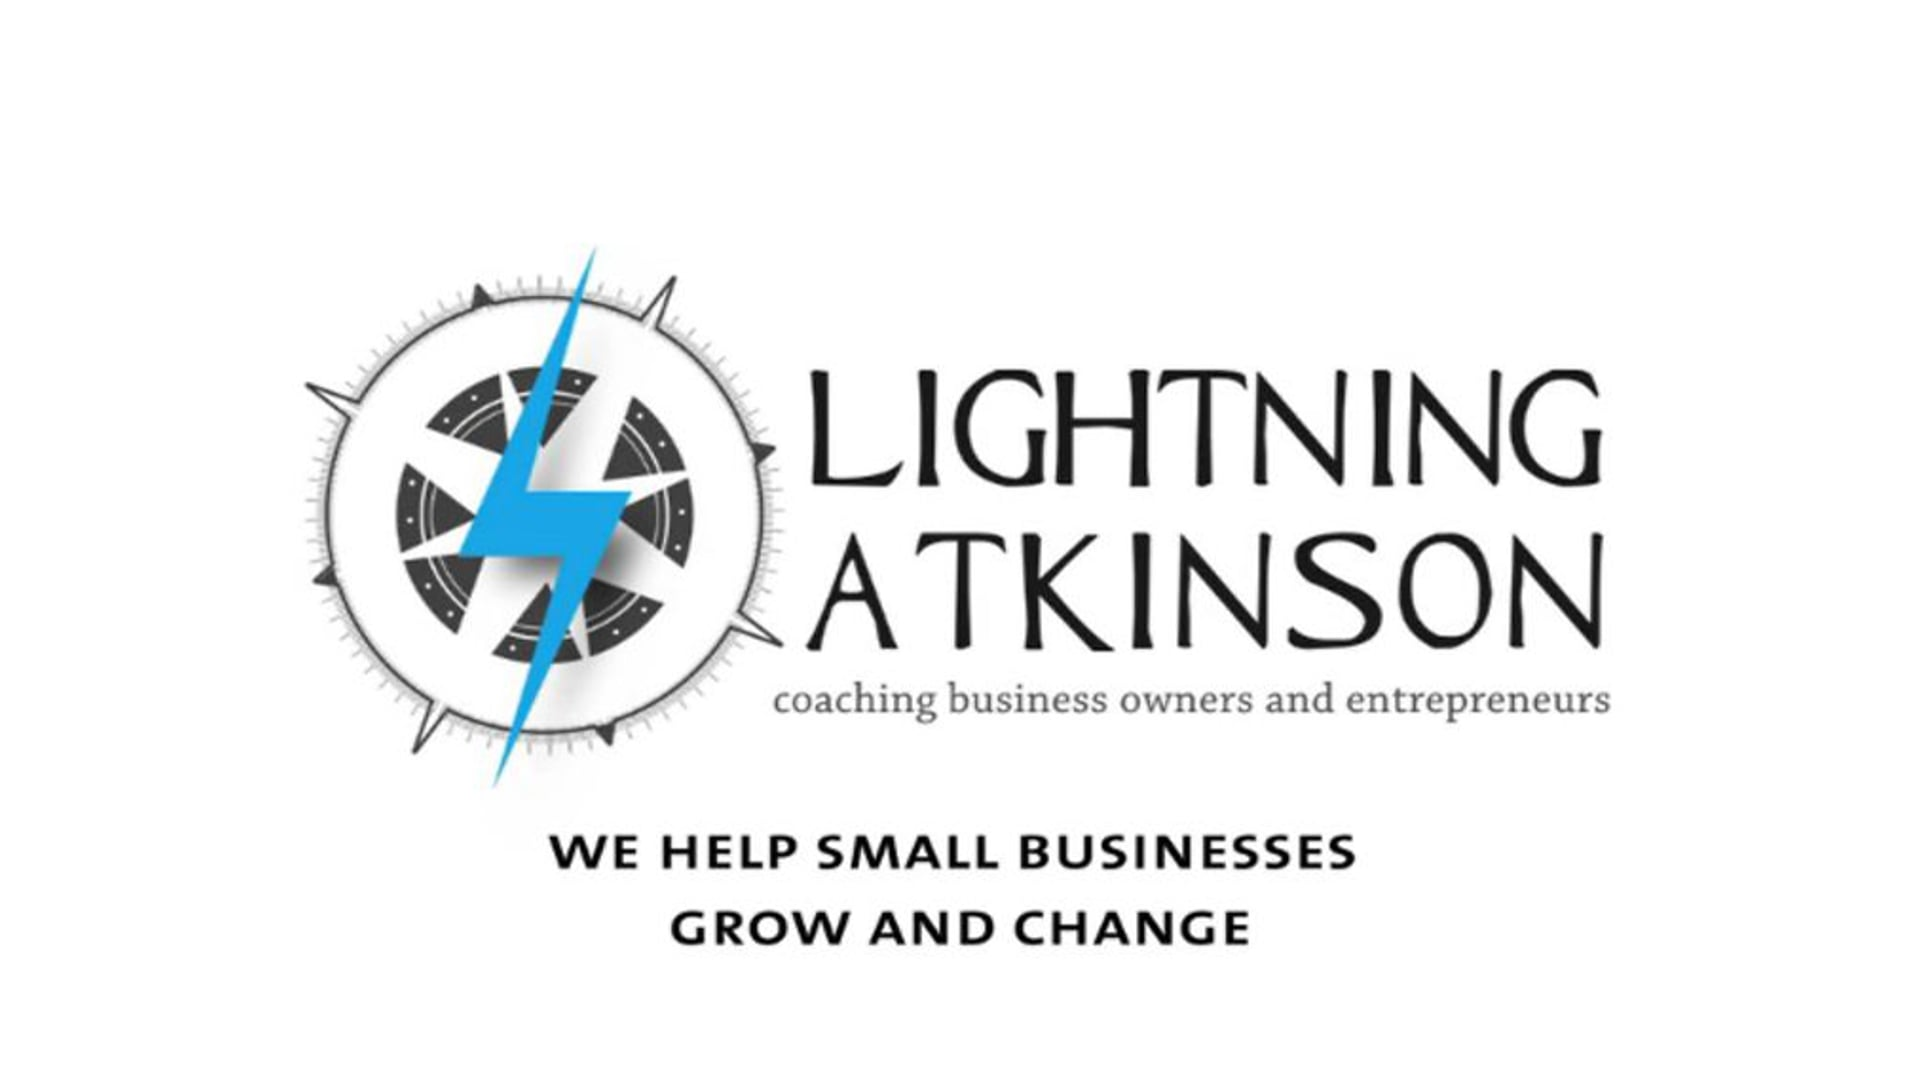 Lightning Atkinson: Helping Small Businesses Grow and Change